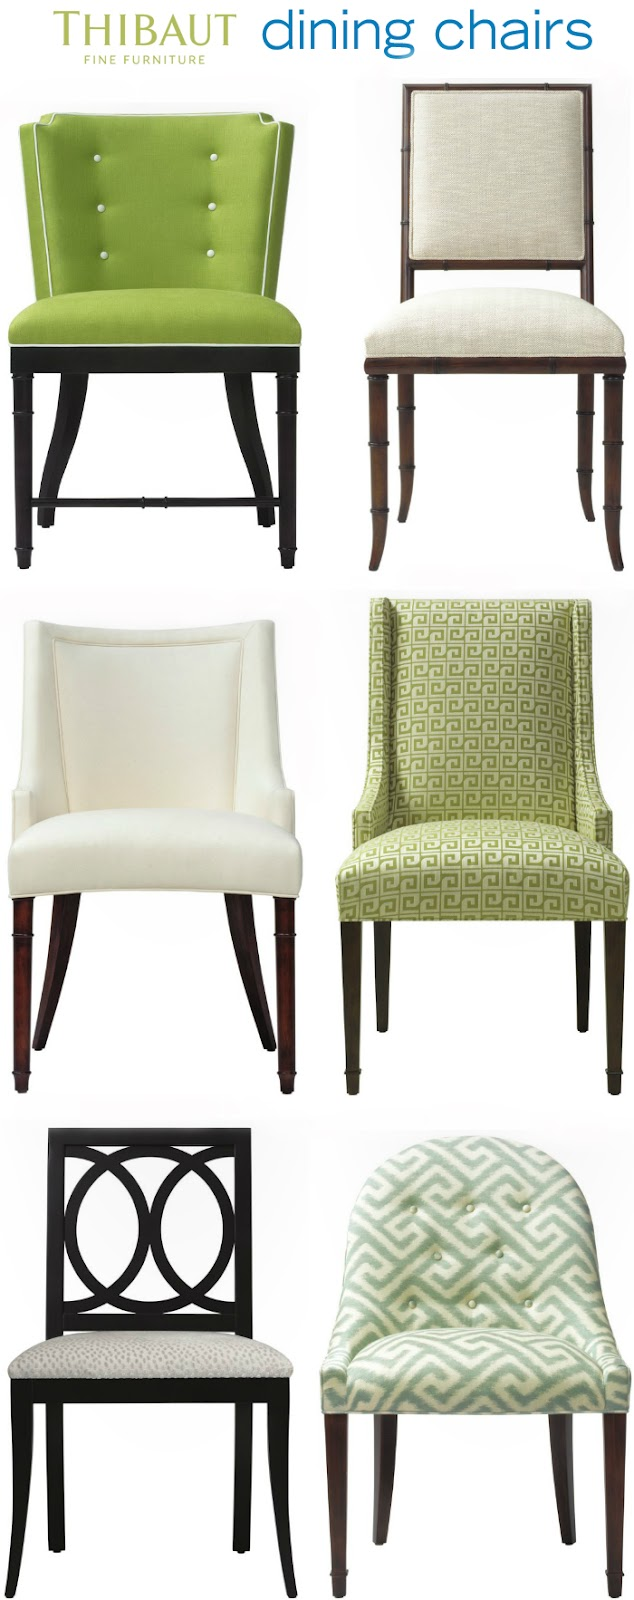 Attrayant And Finally, I LOVE Every Single Thibaut Dining Chair...here They Are In  All Their Glory: